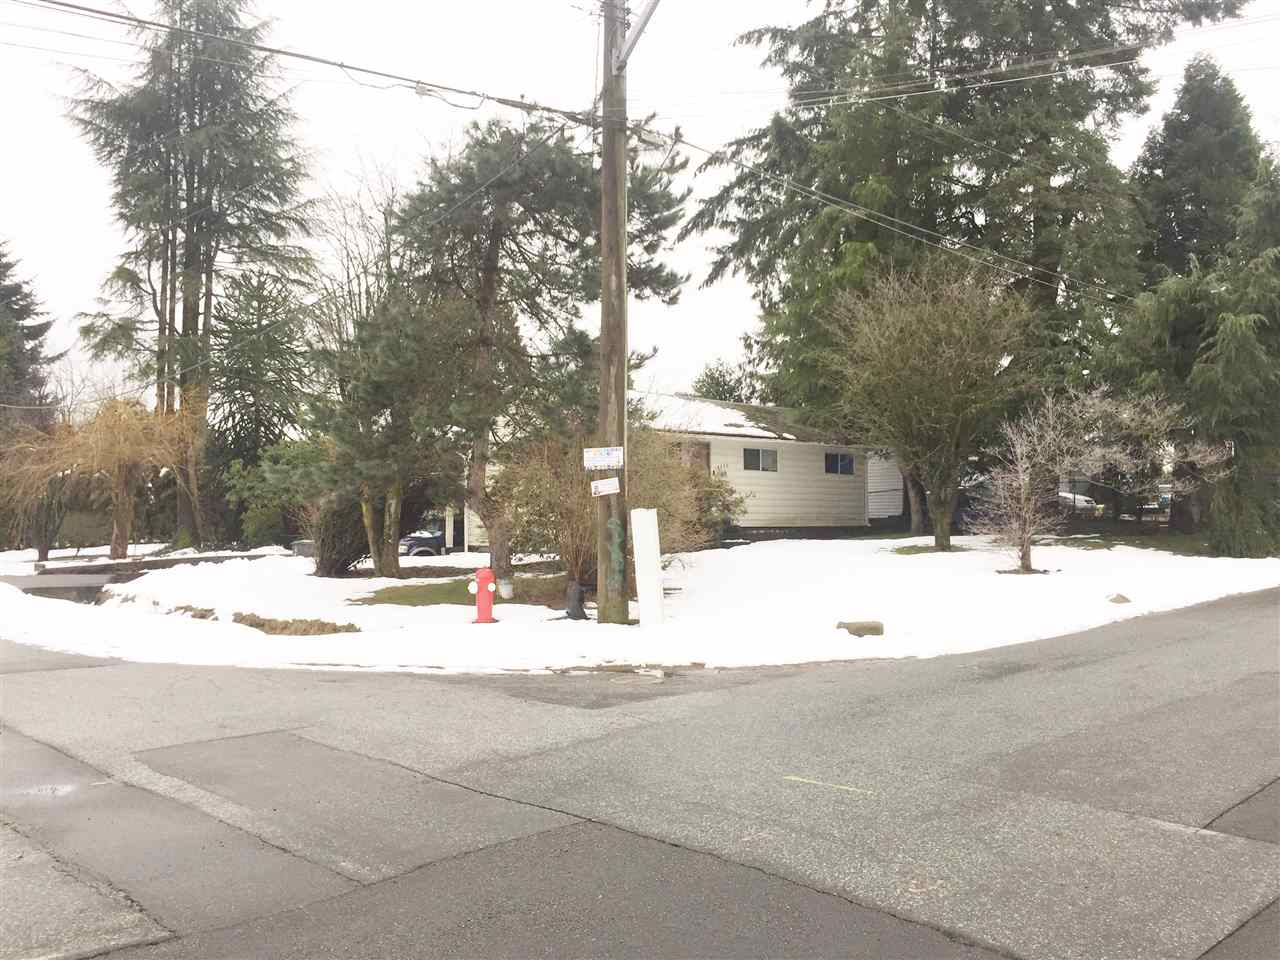 Large RECTANGULAR, CORNER property on a quiet street surrounded by newer homes (LOT 9362 SQFT). Great opportunity to build your dream home. Two blocks from the bus stop with fast easy access from this location to highway, City Central & Sky-train to downtown Vancouver. (small right of way on corner of lot). Excellent value - bring offers!